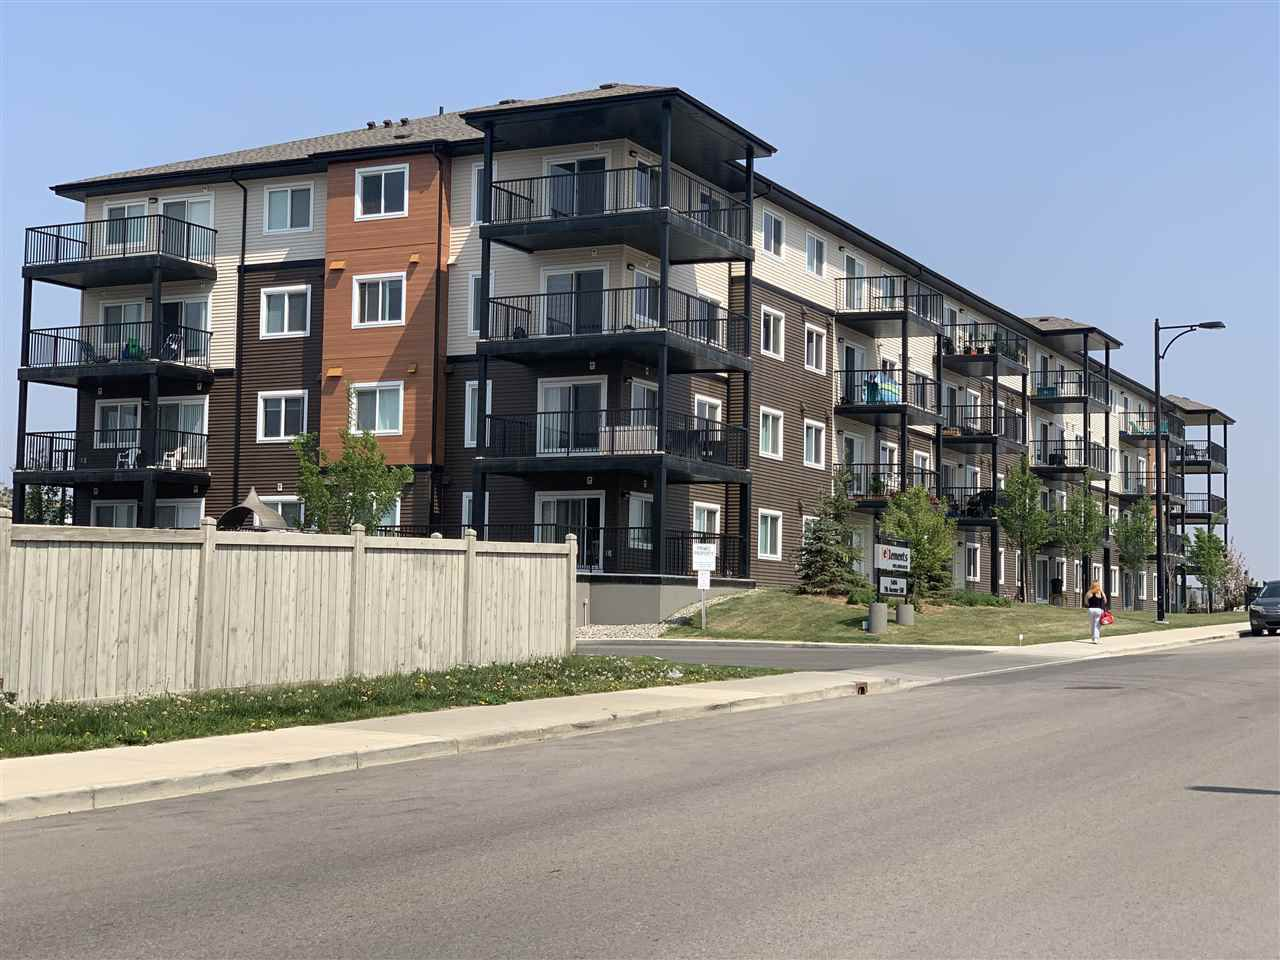 Main Photo: 110 5404 7 ave in Edmonton: Zone 53 Condo for sale : MLS®# E4160103